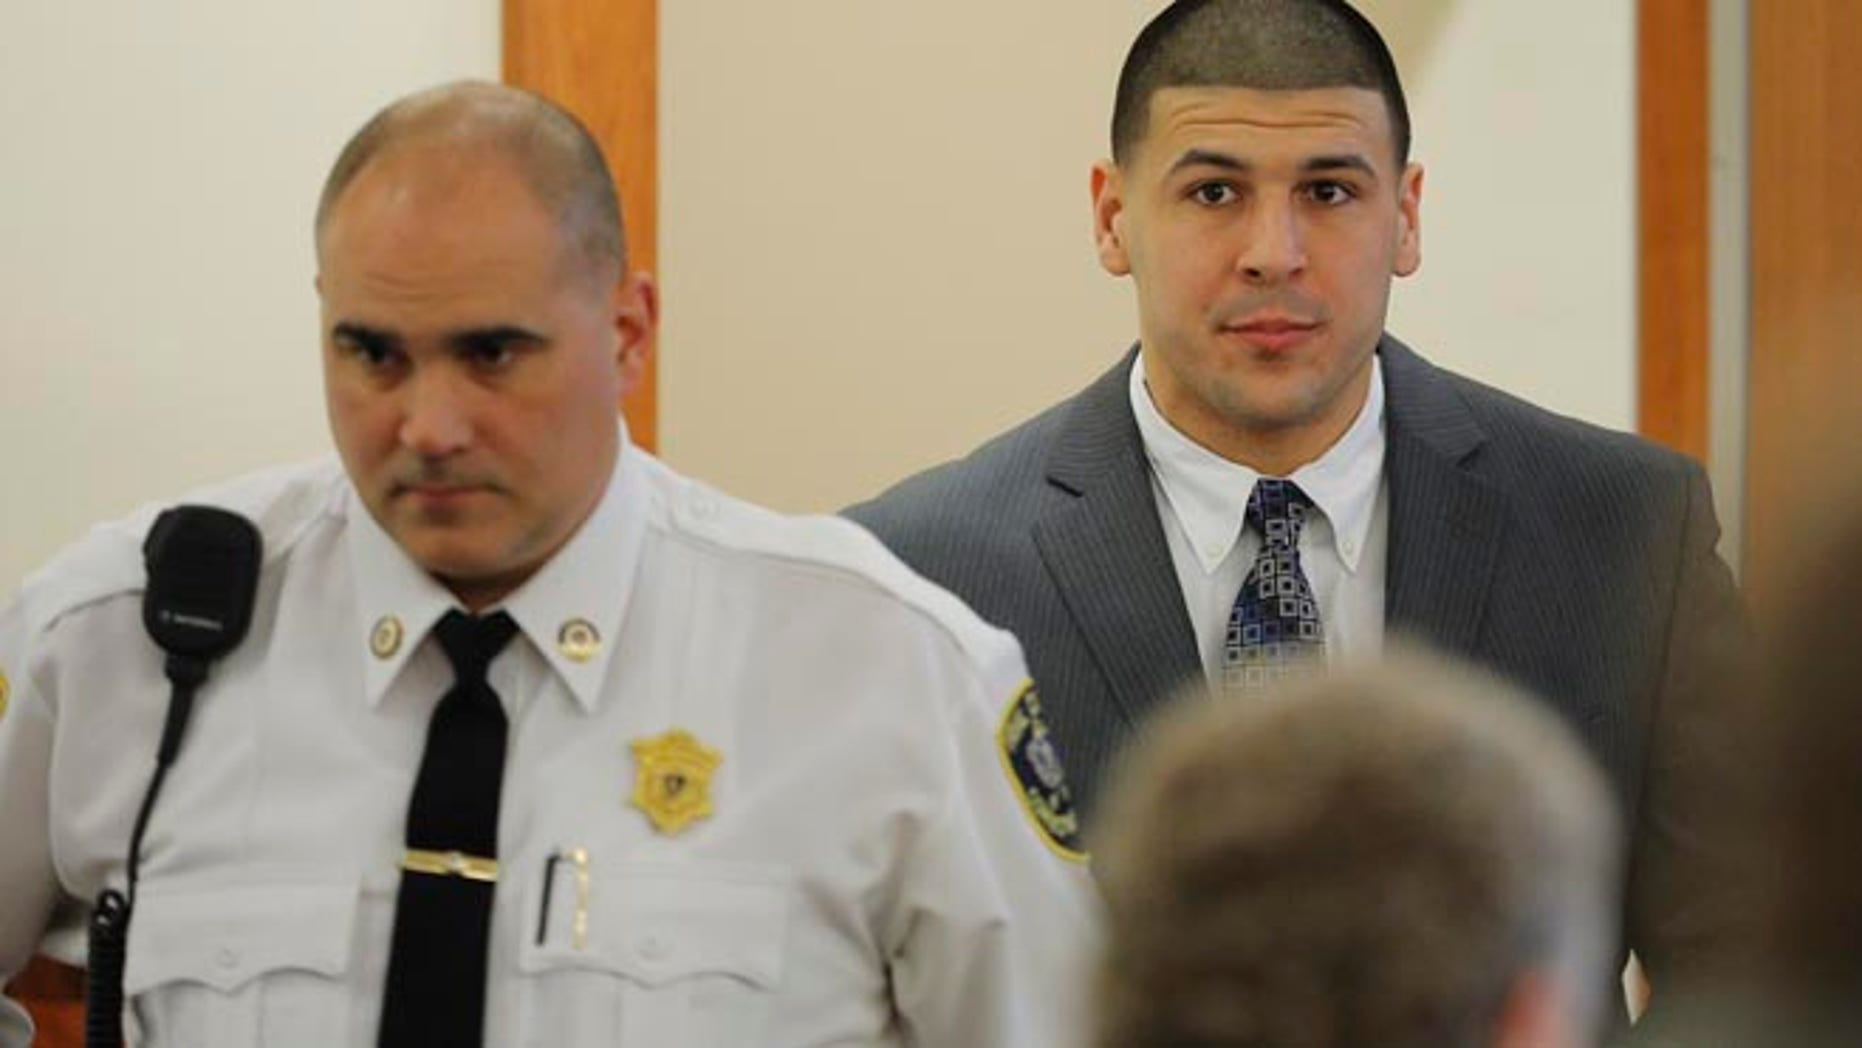 JUNE 2013: Former New England Patriots football player Aaron Hernandez arrives in the courtroom at Bristol County Superior Court in Fall River, Massachusetts.